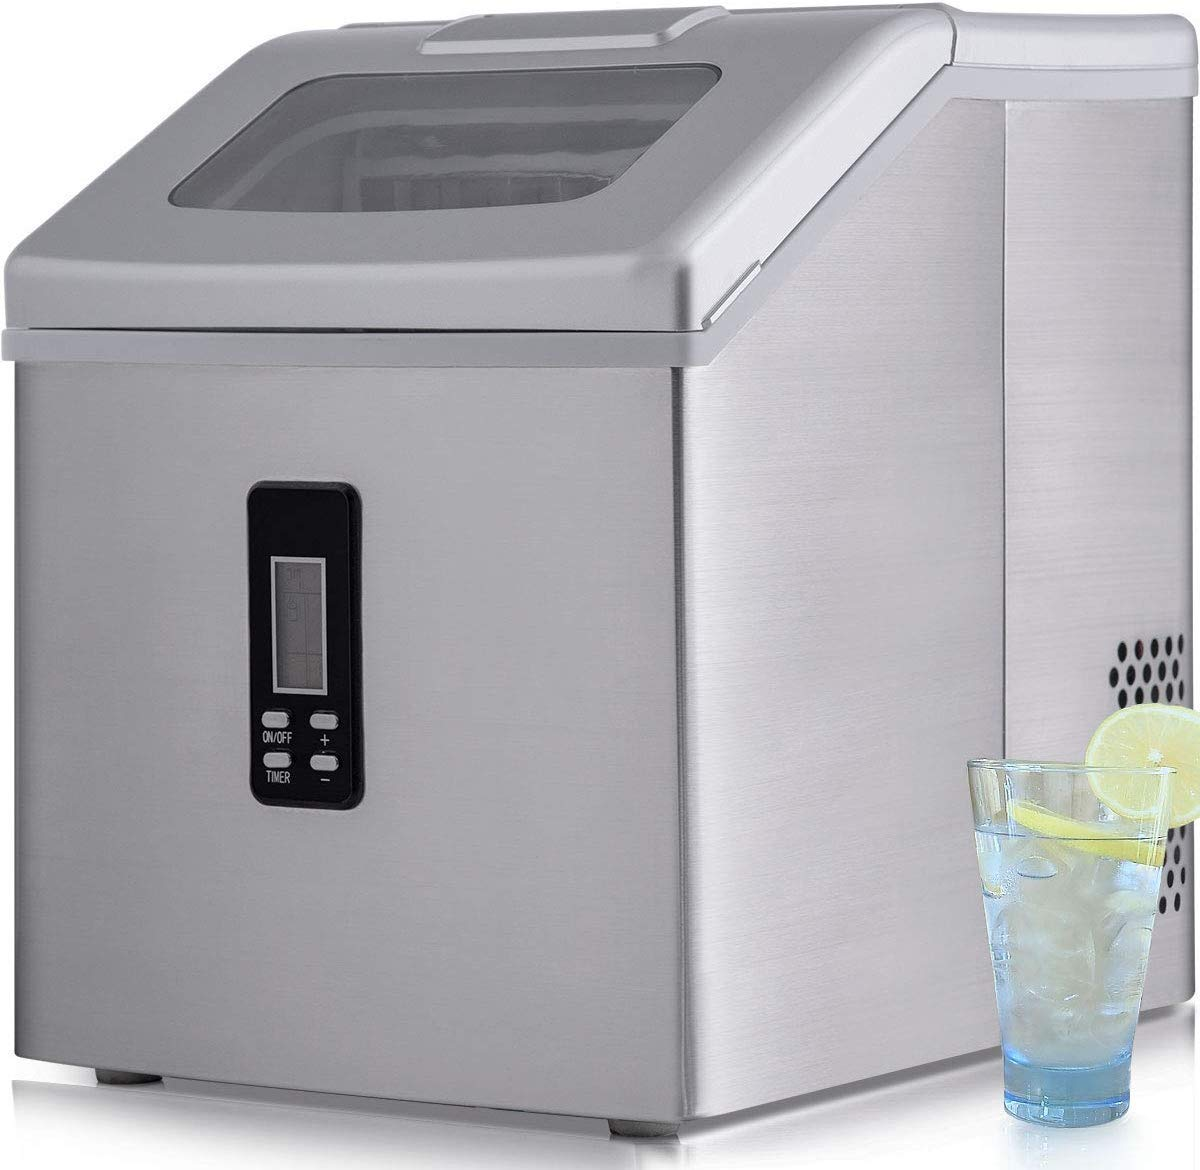 Sentern Portable Electric Clear Ice Maker Machine Stainless Steel Countertop Ice Making Machine, 2.4 lbs Ice Storage 48 lbs Per Day, Real Clear Ice Cubes, Crystal clear ice